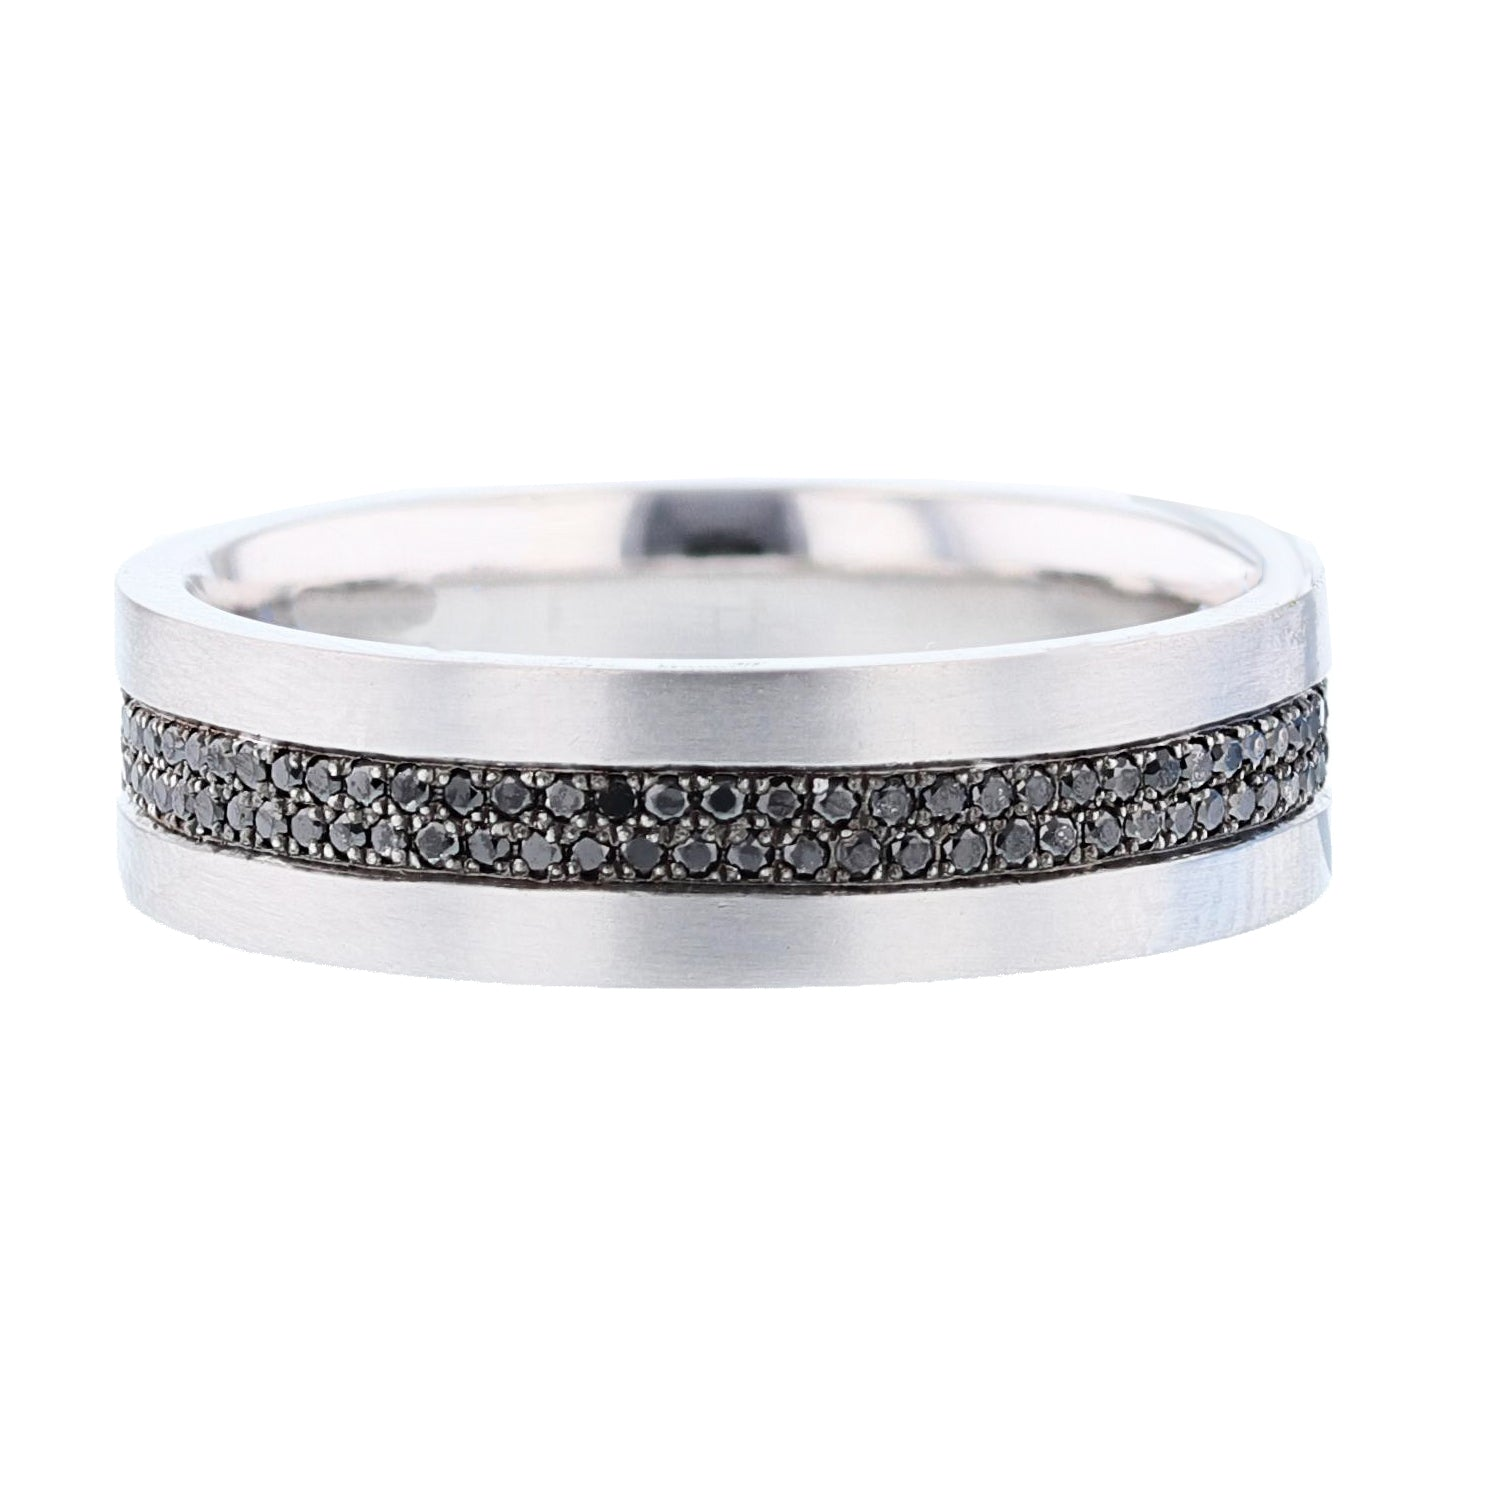 Men's 14K White Gold Black Diamond Band - Nazarelle